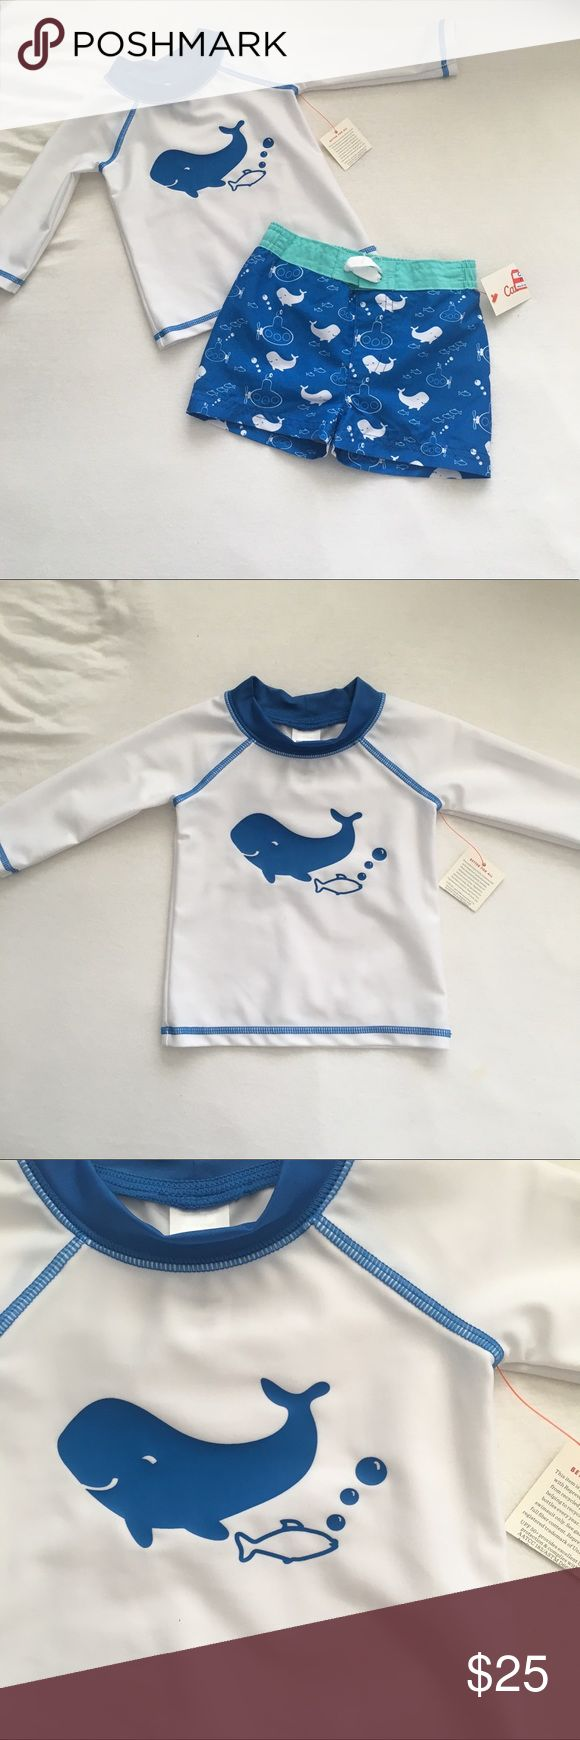 Boys blue and white whale swimsuit Boys blue and white whale swim trunks and long sleeve swim shirt. NWT.  🍁🍂🍁🍂🍁🍂🍁🍂🍁🍂🍁🍂🍁🍂 Size: fits true to size  Feel free to ask questions! All offers will be considered! I ship within 3 days max! Bundle discount of 15%! Free coupon code for next purchase with each purchase from my closet! Free shipping on bundles over $69 after the bundle discount. Simply offer $7 less on your bundle to cover the cost of shipping cat & jack Swim Swim Trunks